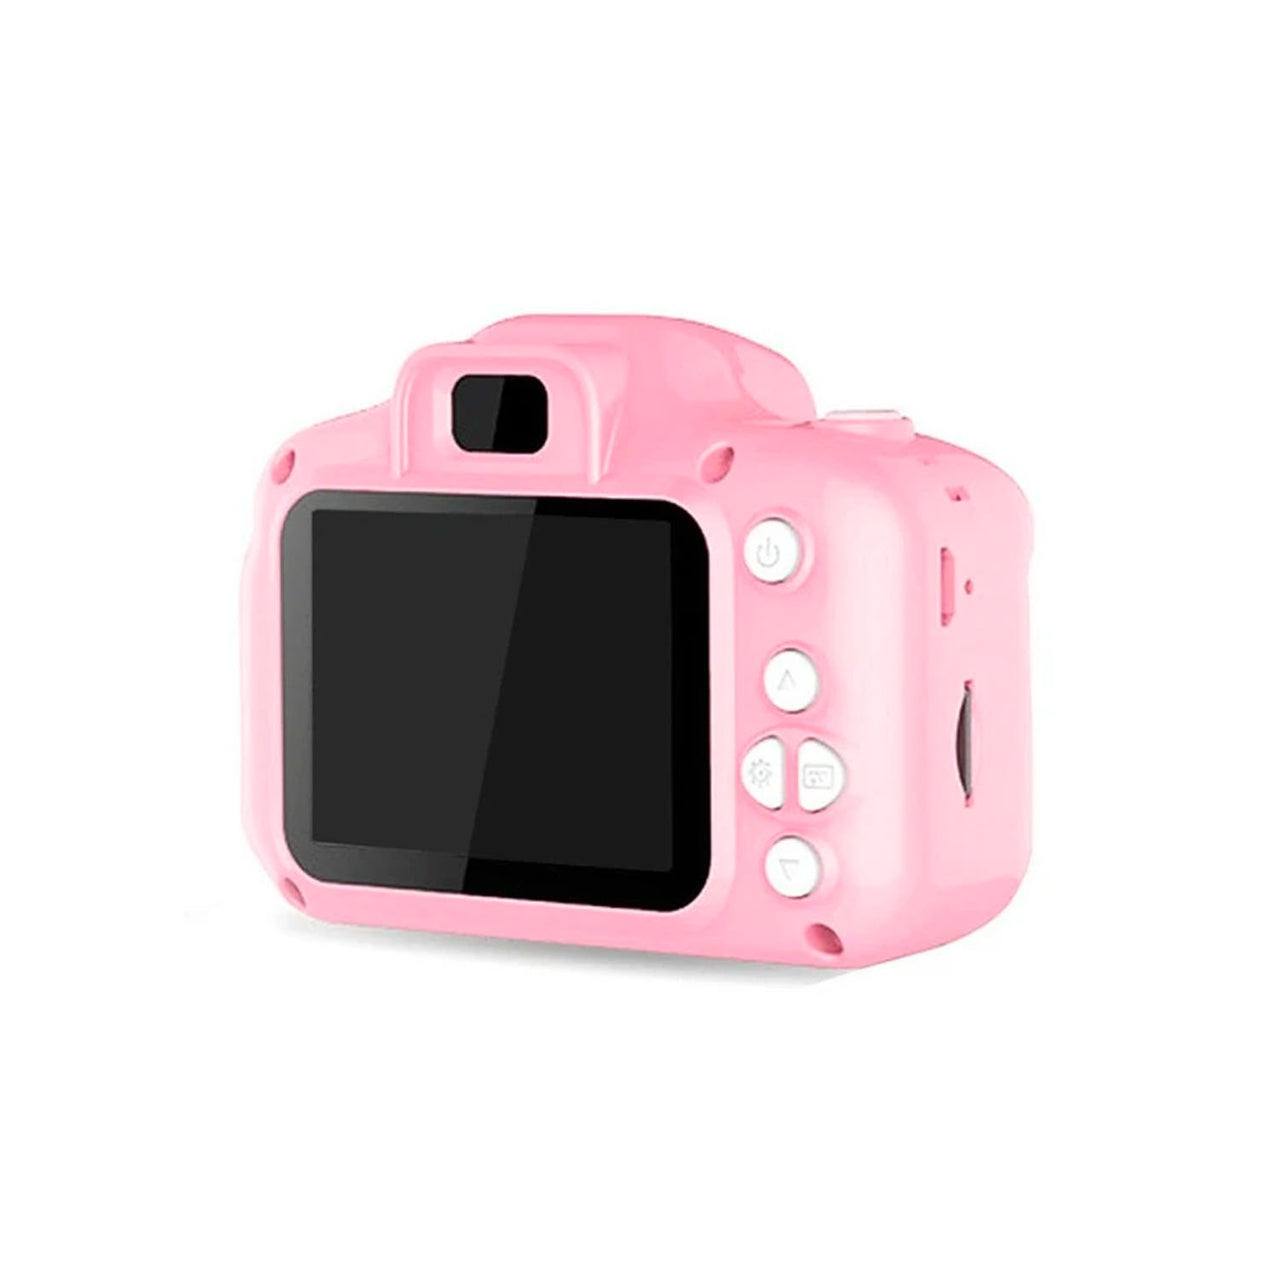 A real camera made to fit the hands of kids